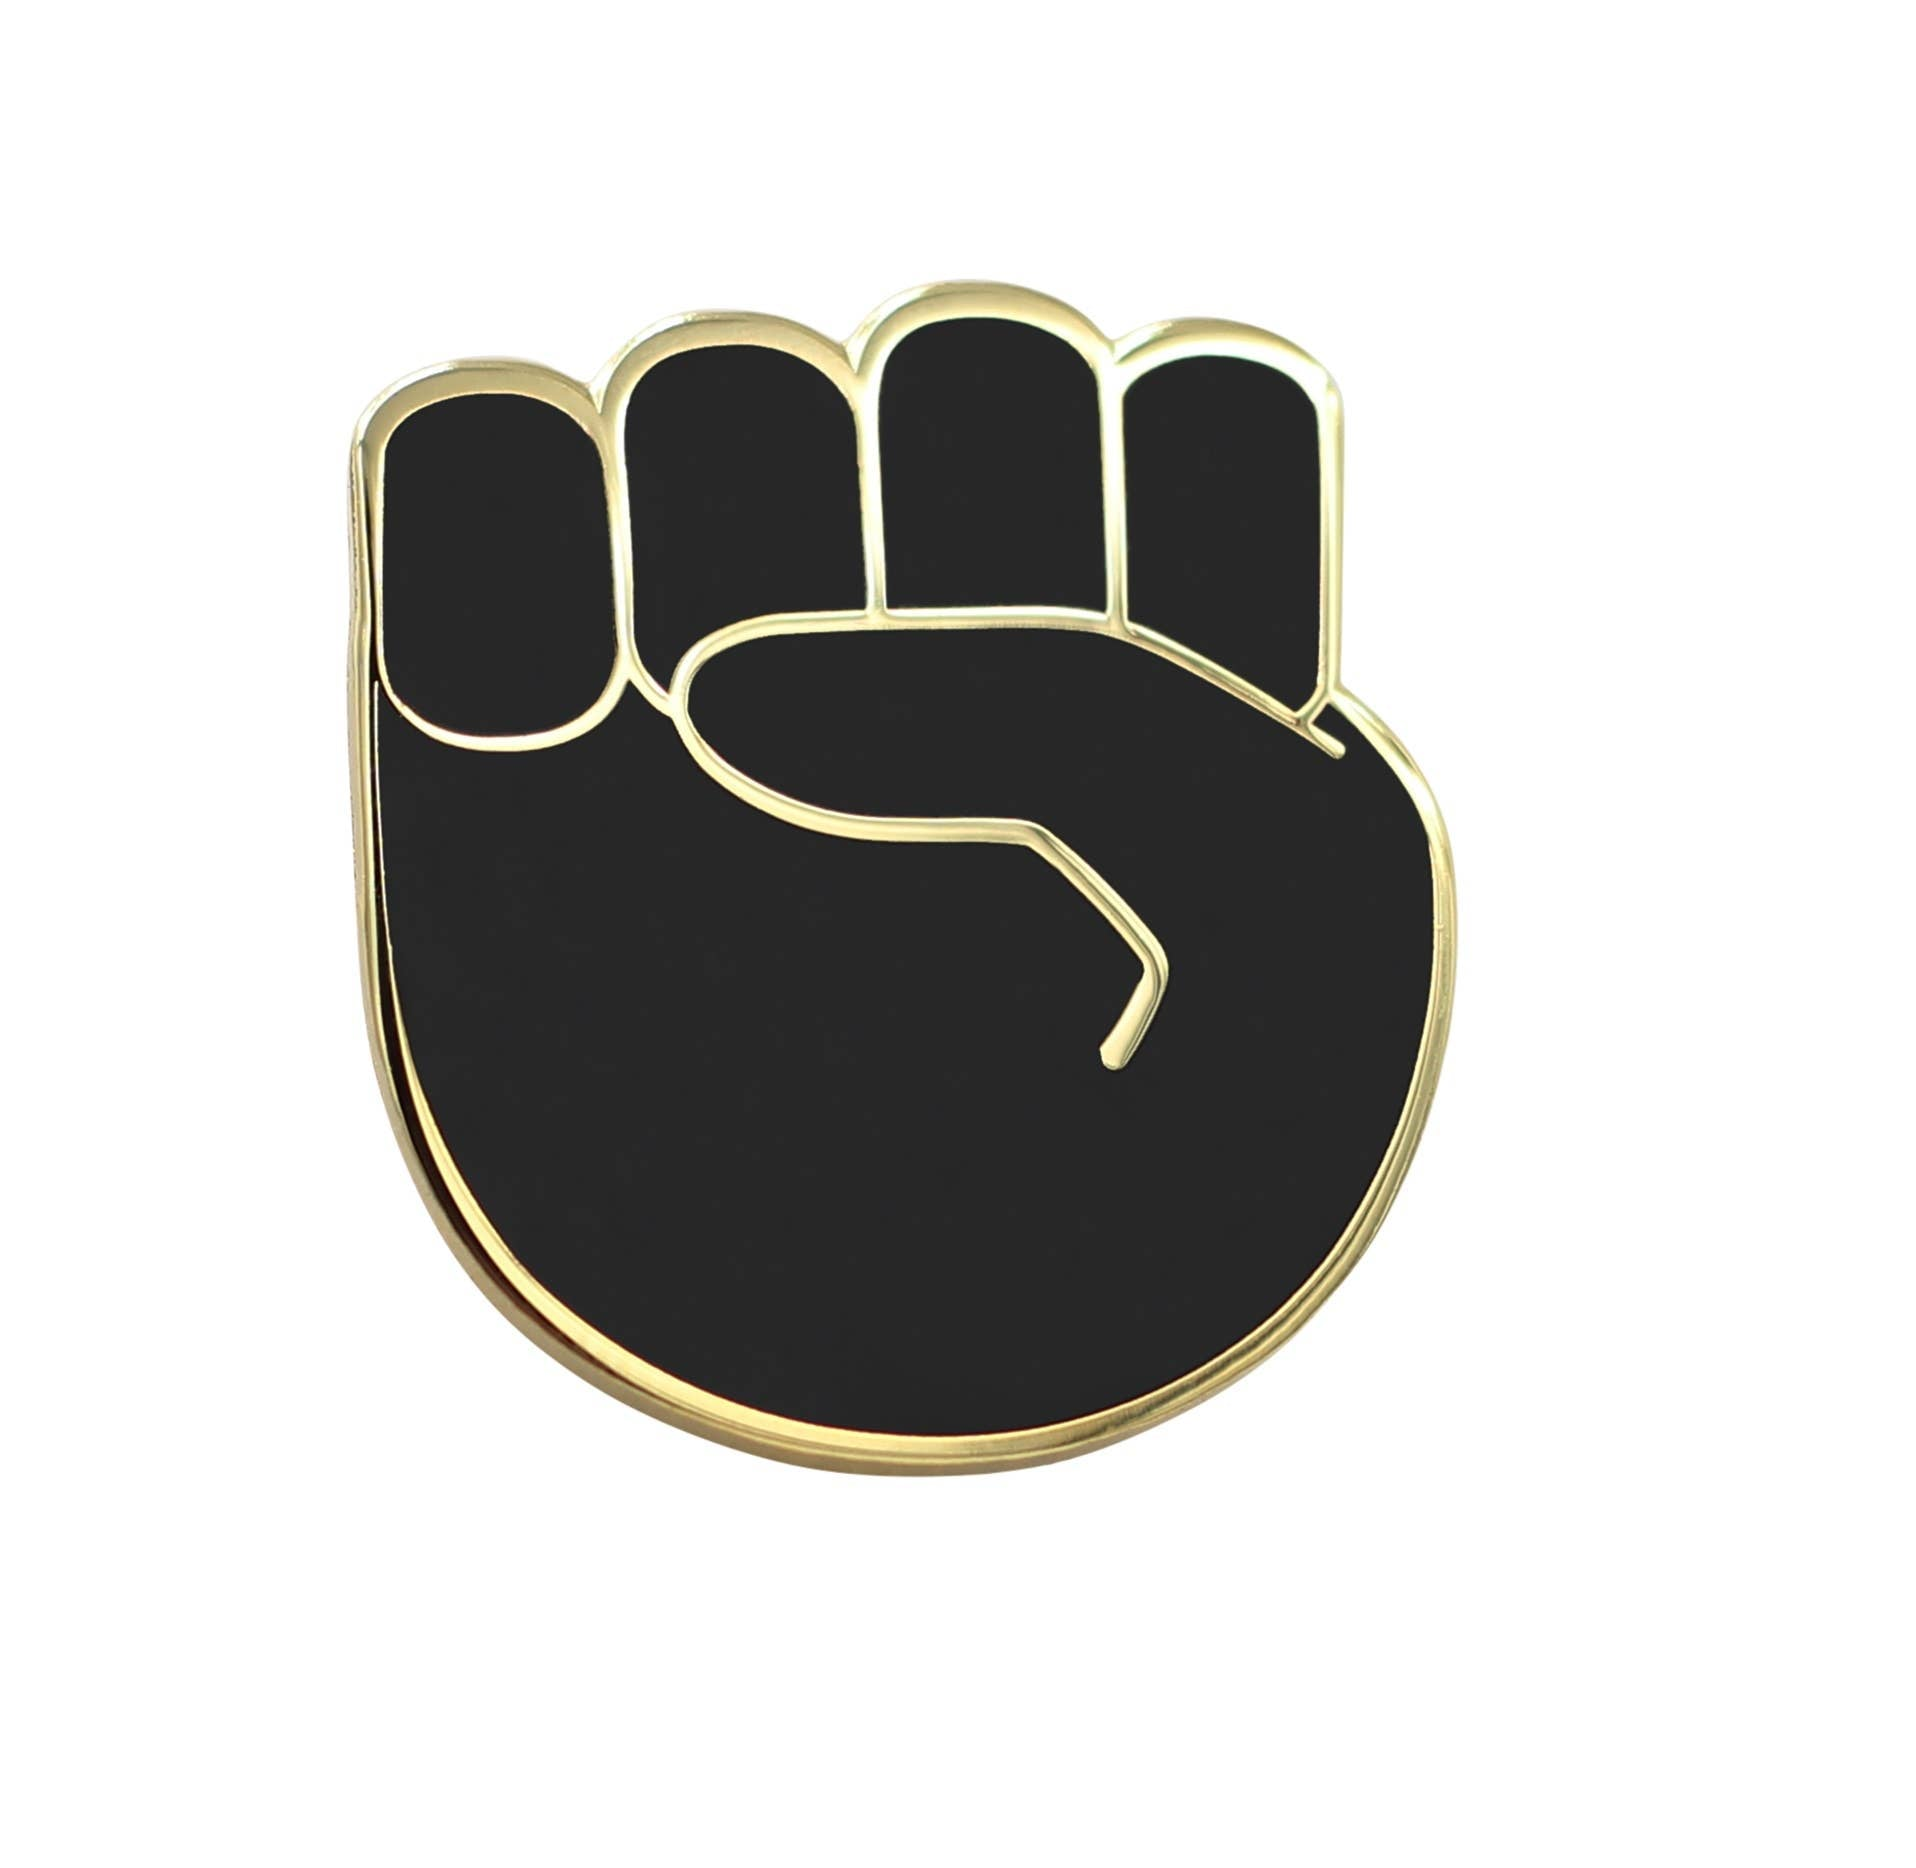 BLM Raised Fist Pin